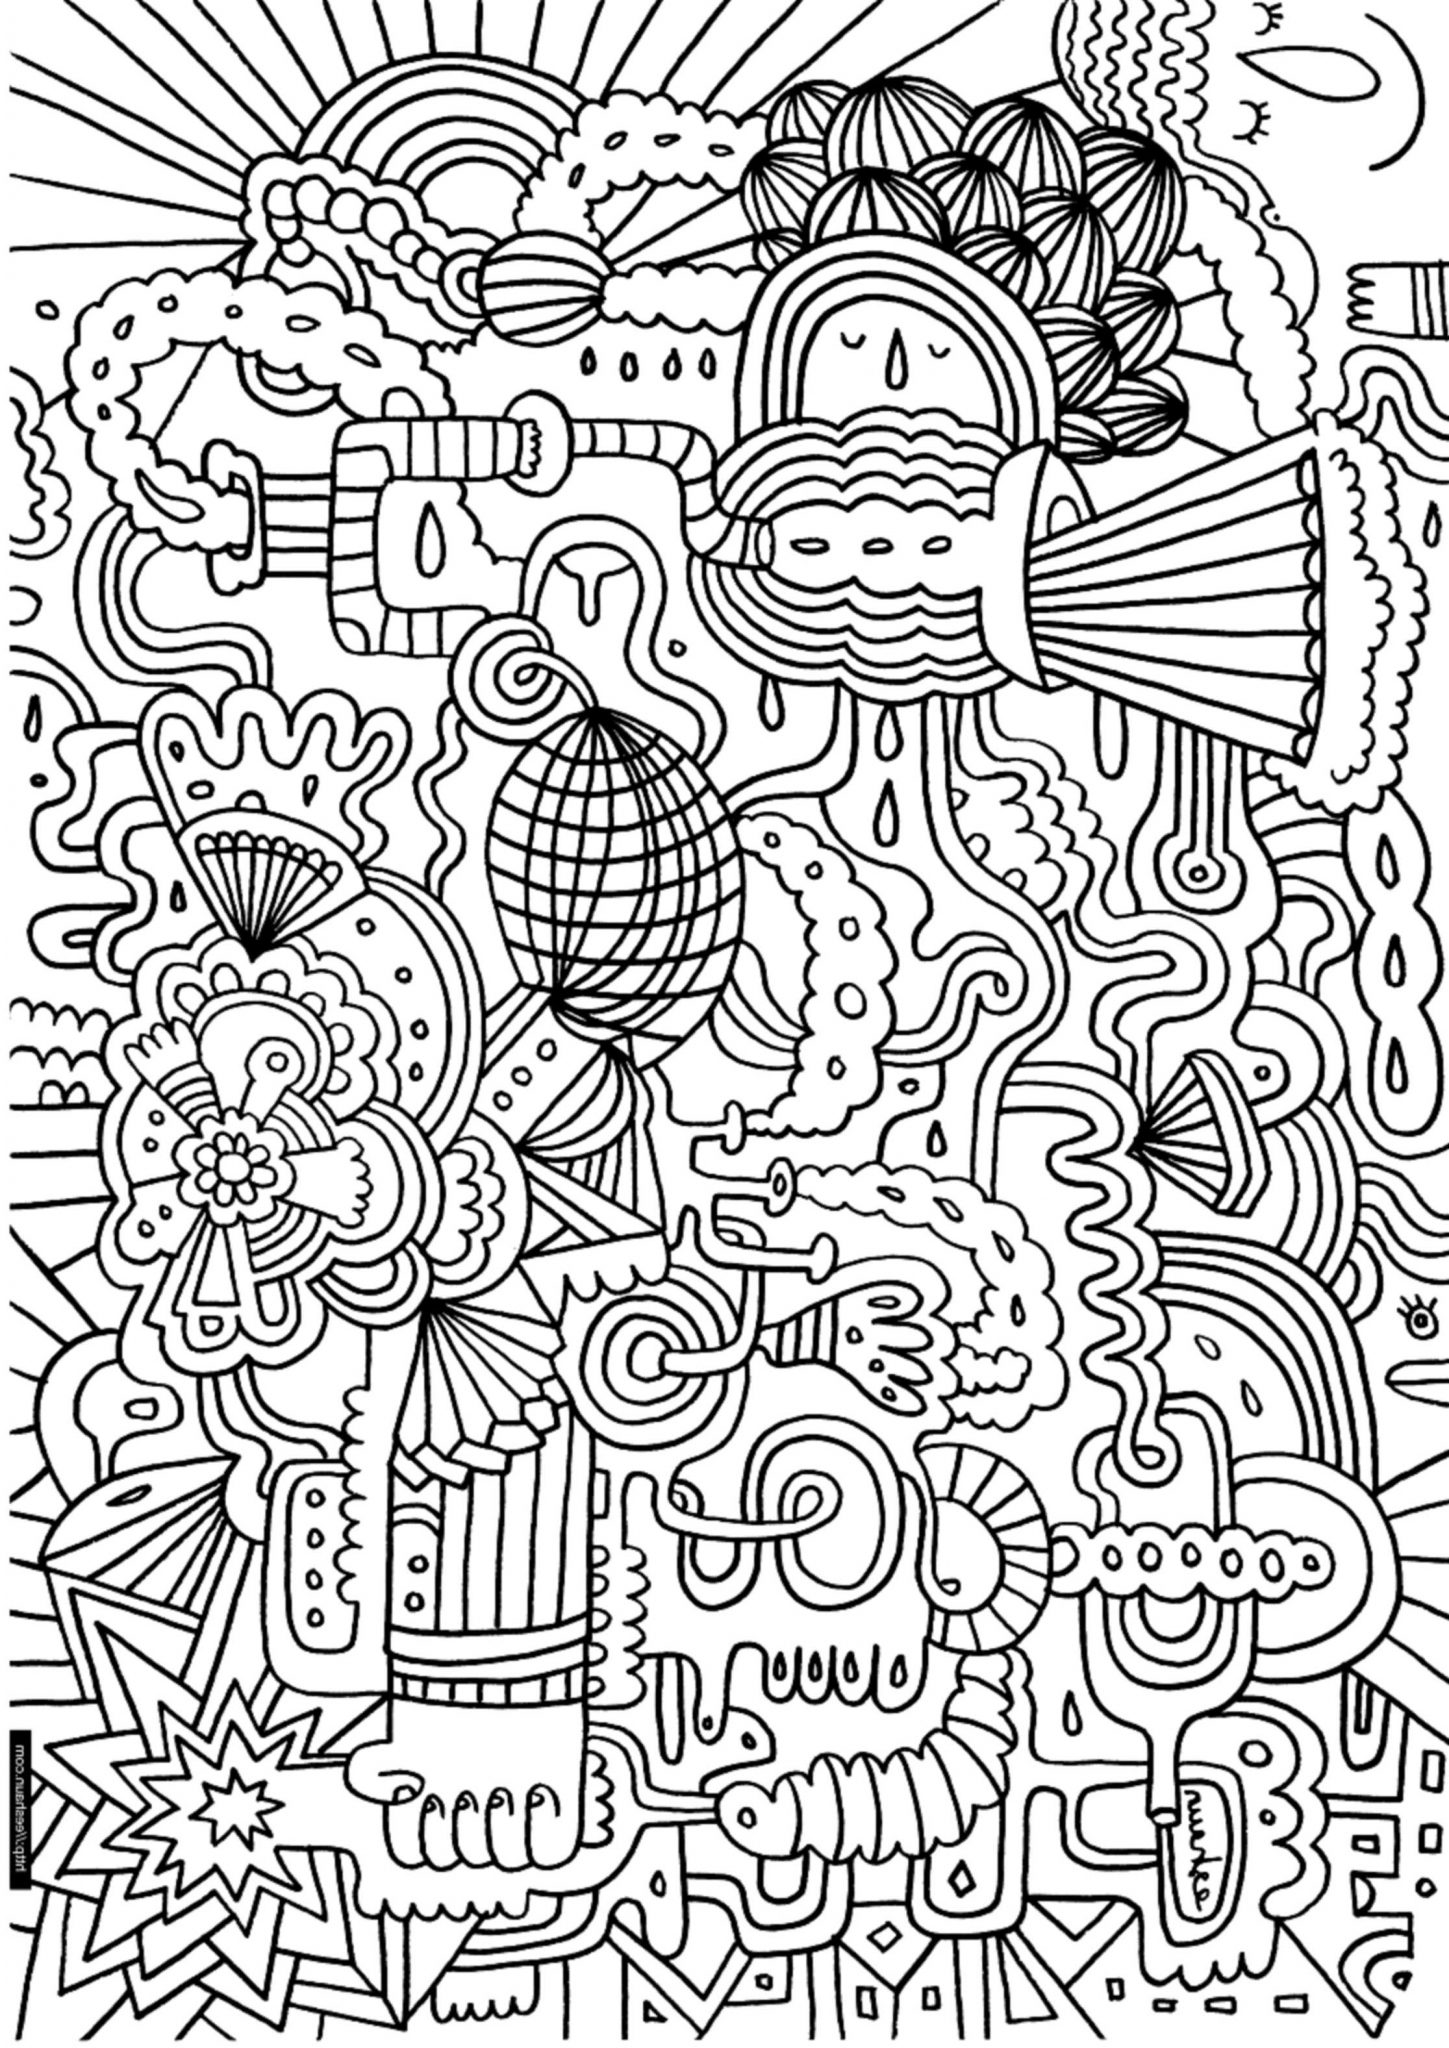 Complex colouring pages